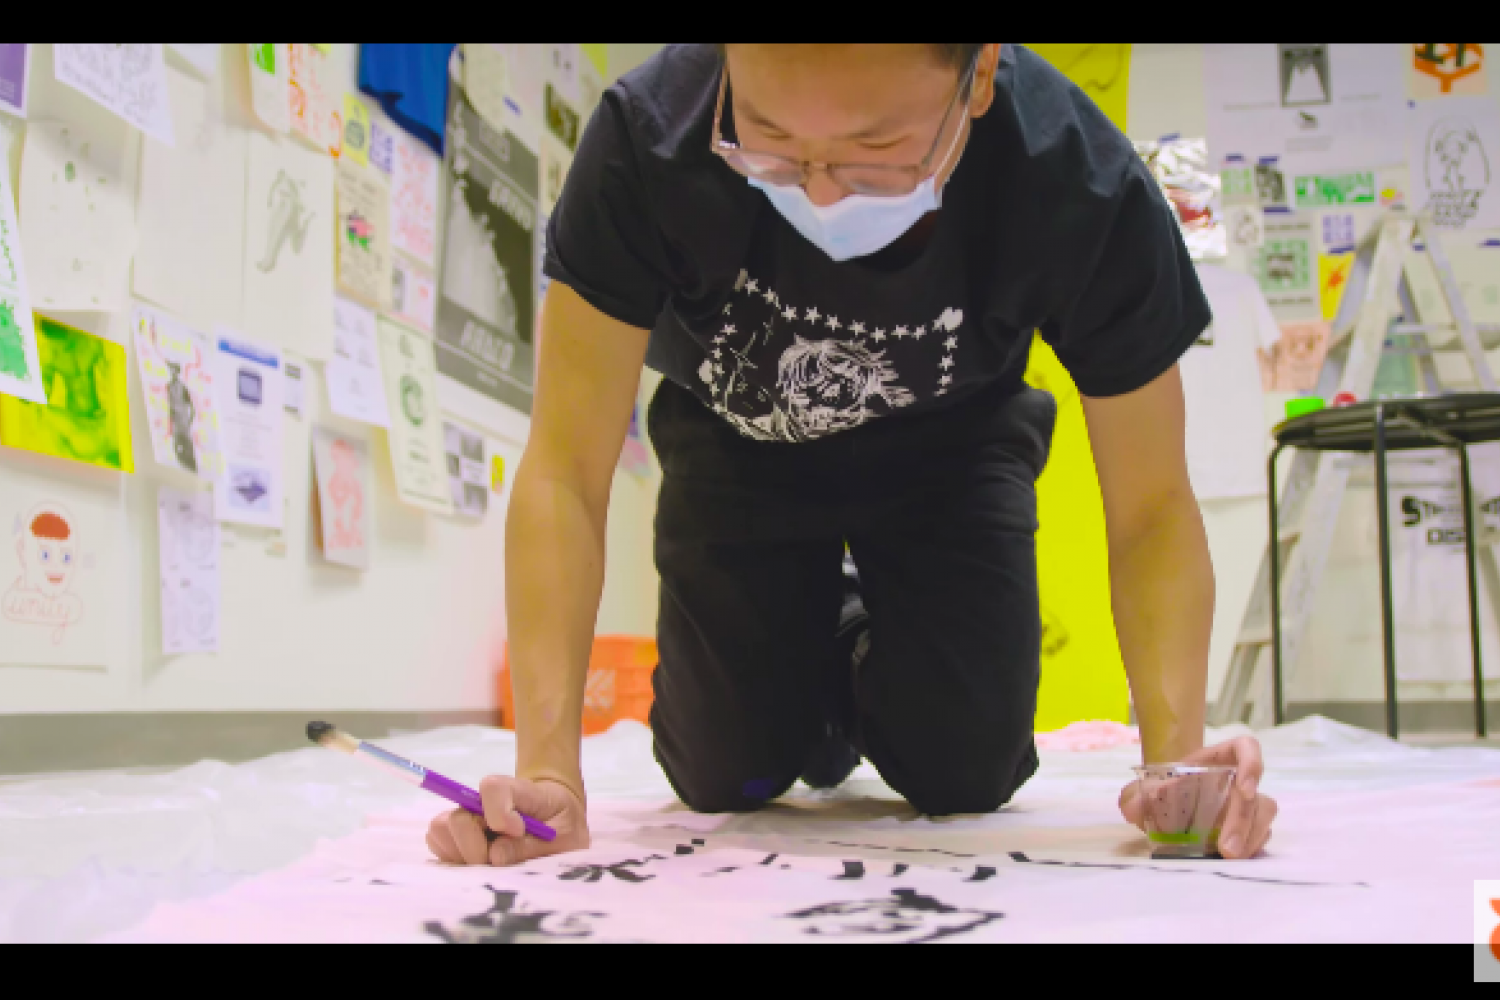 Videostill of the artist Jeff Cheung handpainting a banner on the ground